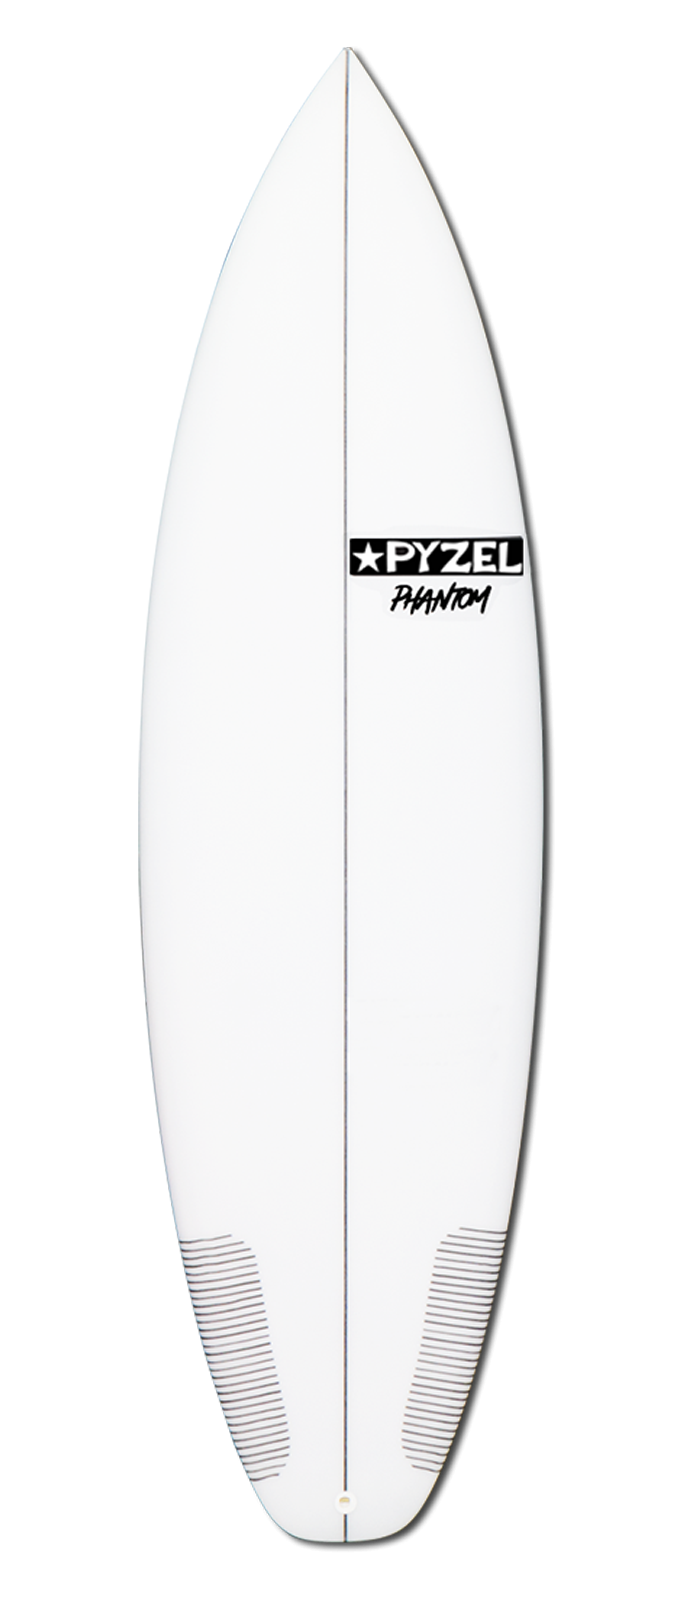 GROM PHANTOM surfboard model deck